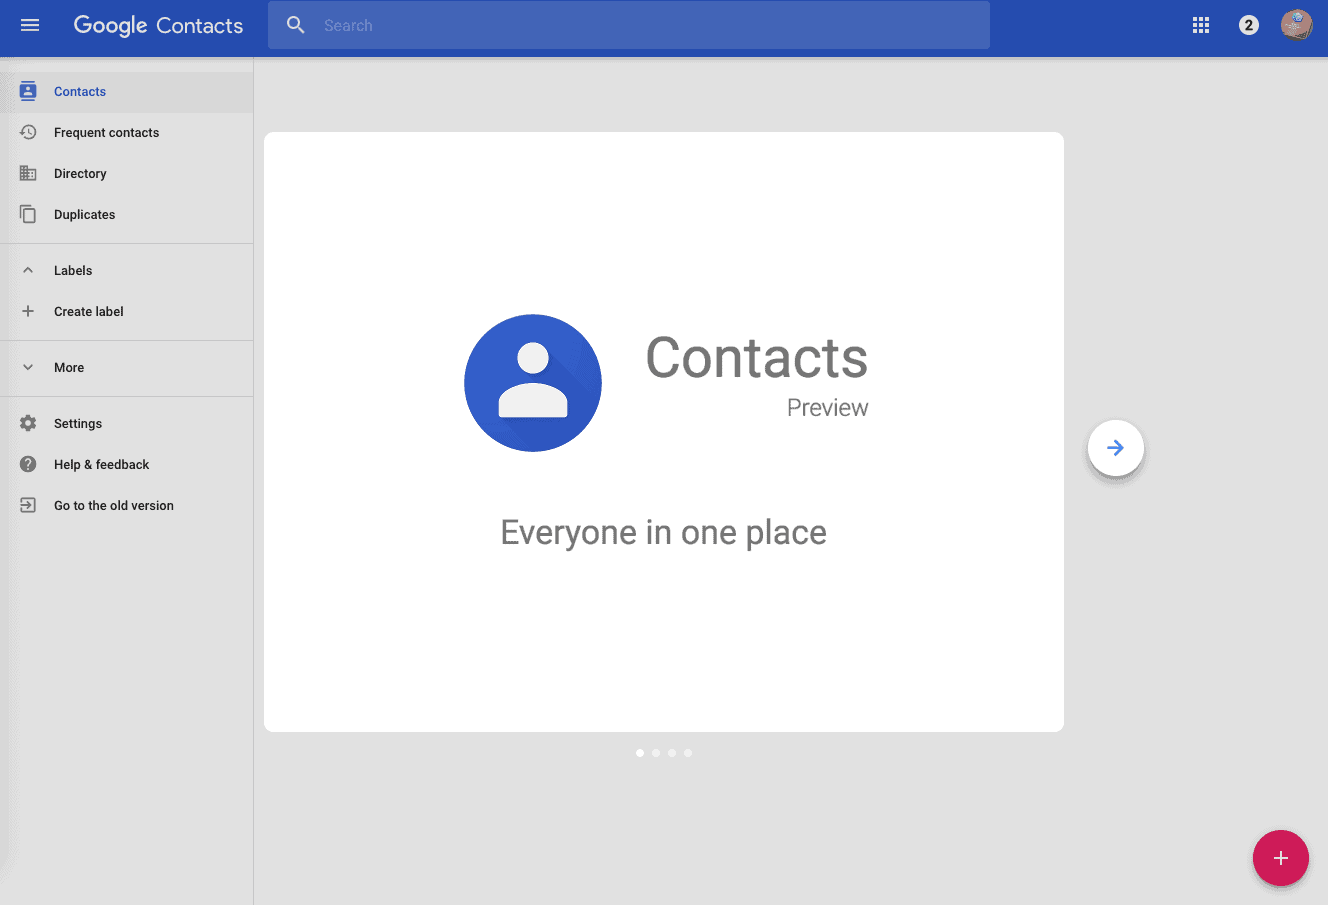 Web Version of Google Contacts Gets Material Design UI ...